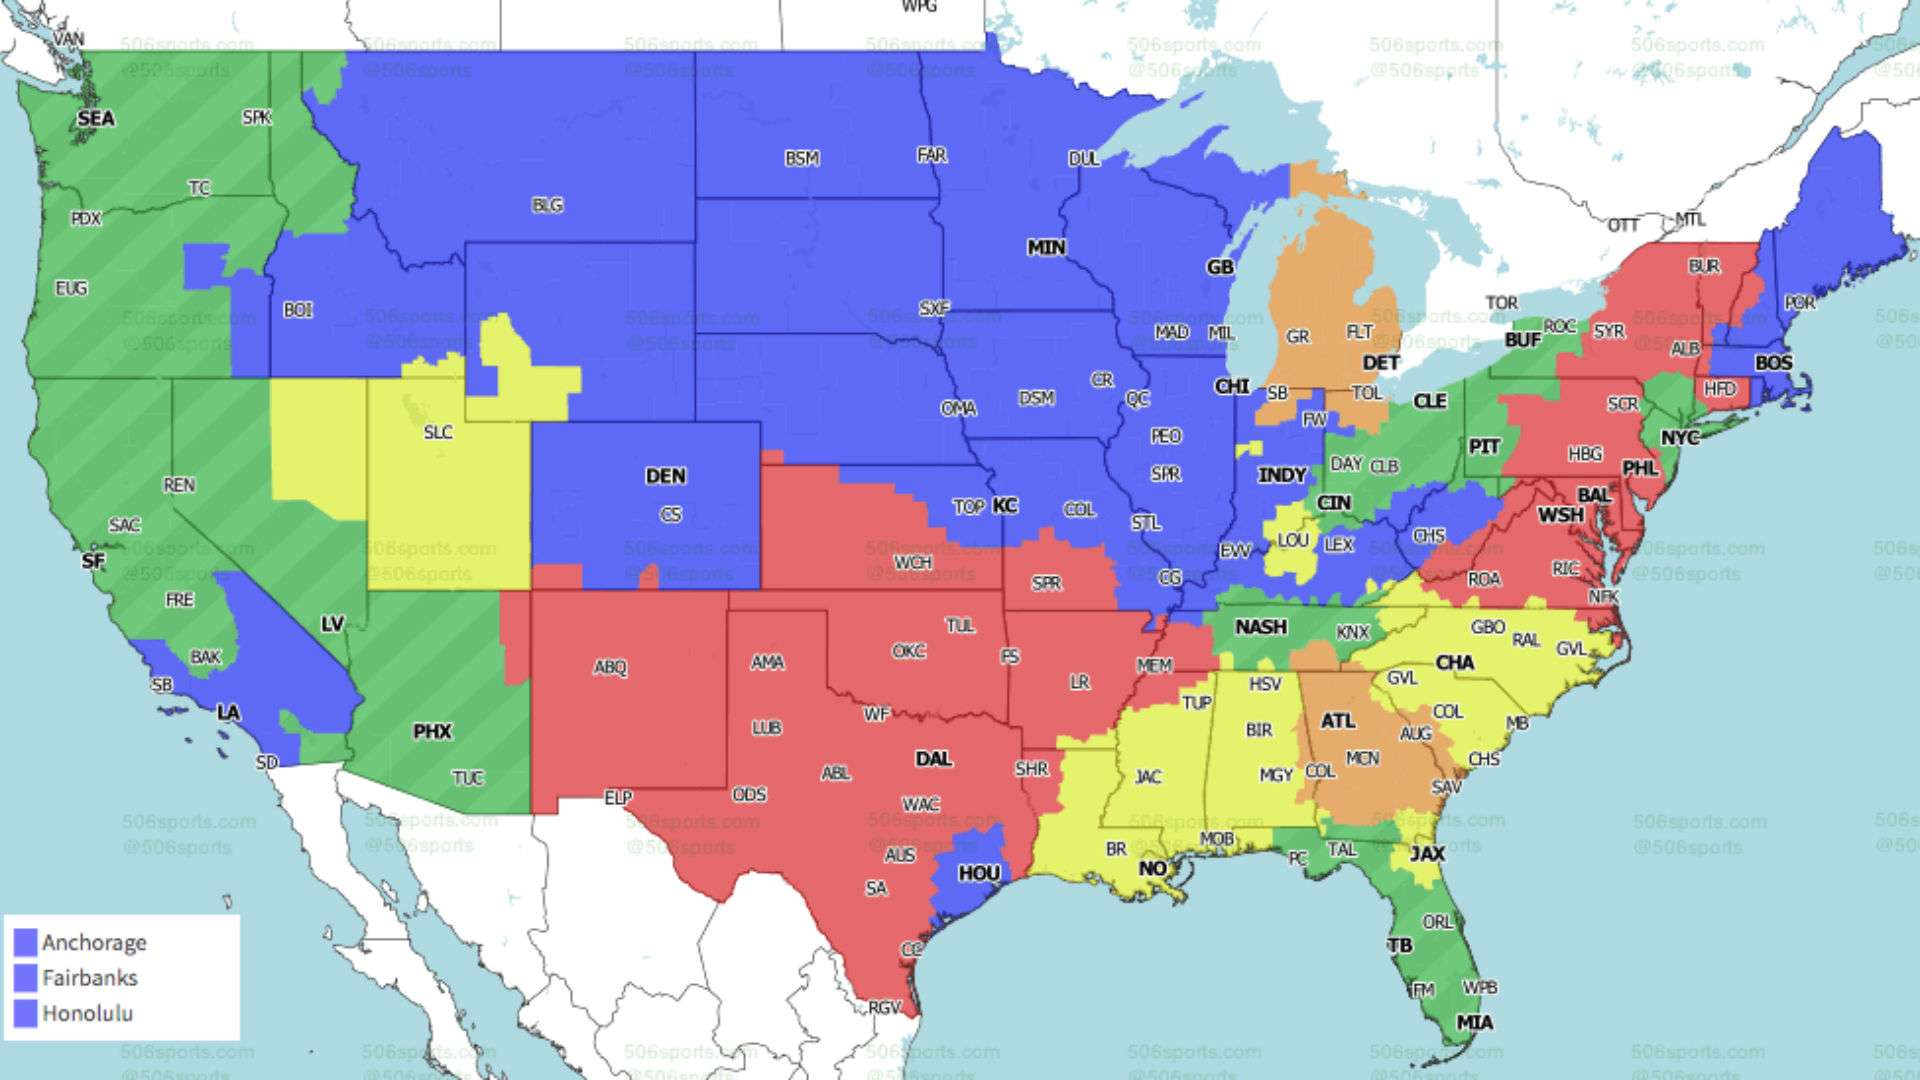 Nfl Week 7 Coverage Map Tv Schedule For Cbs Fox Regional Broadcasts Sporting News